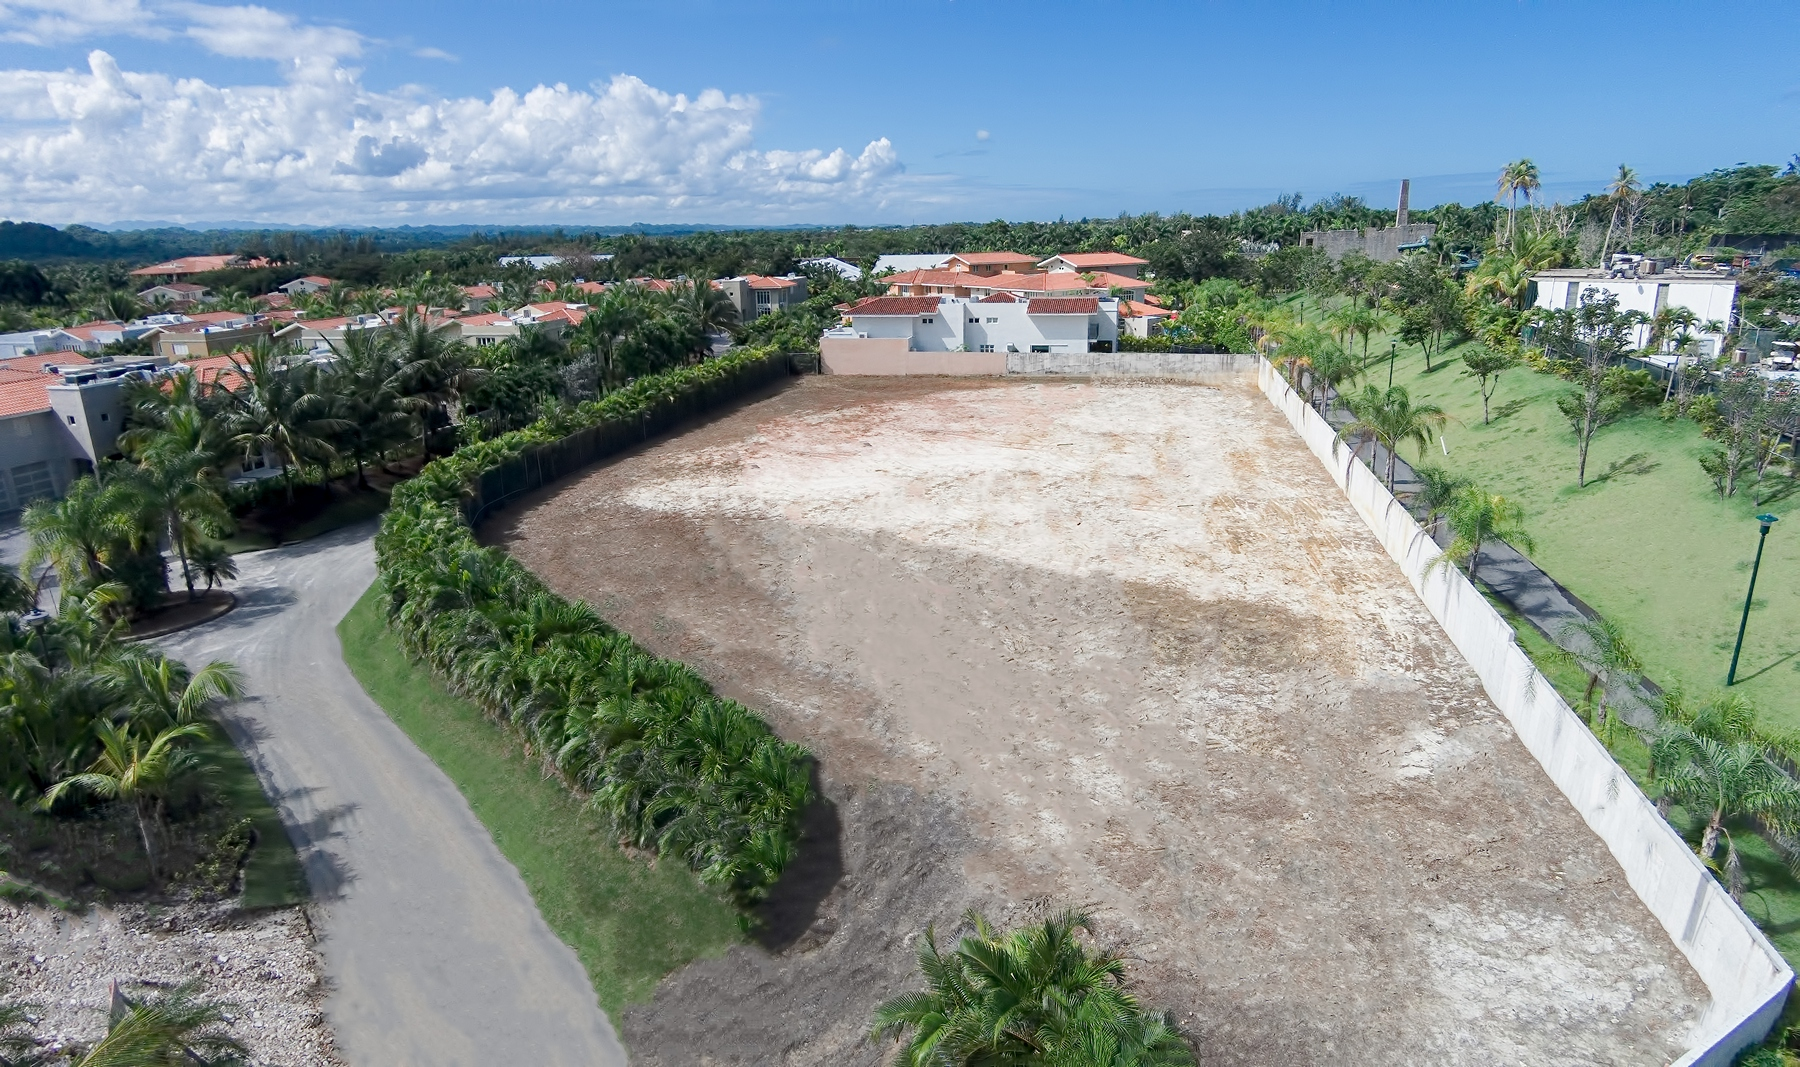 Land for Sale at Dorado Beach East Unique Lot Opportunity 323 Dorado Beach East Dorado, 00646 Puerto Rico